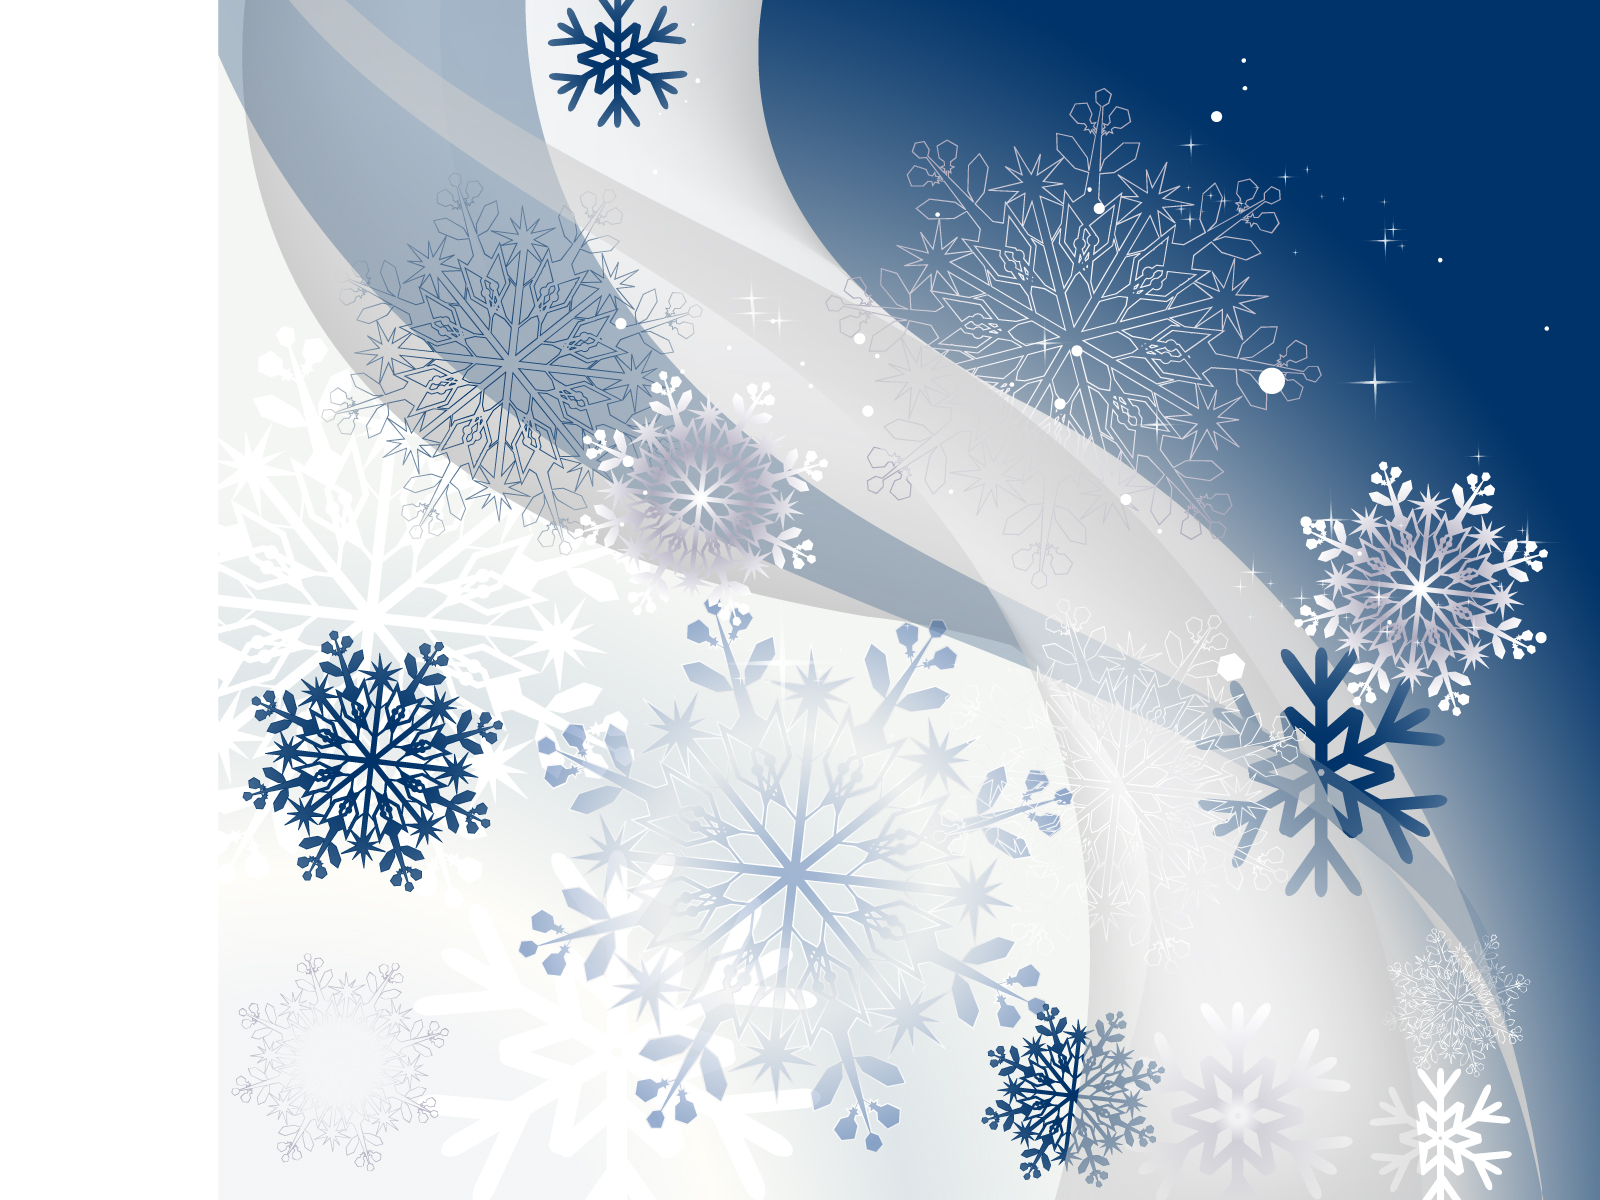 winter background with snowflakes backgrounds blue